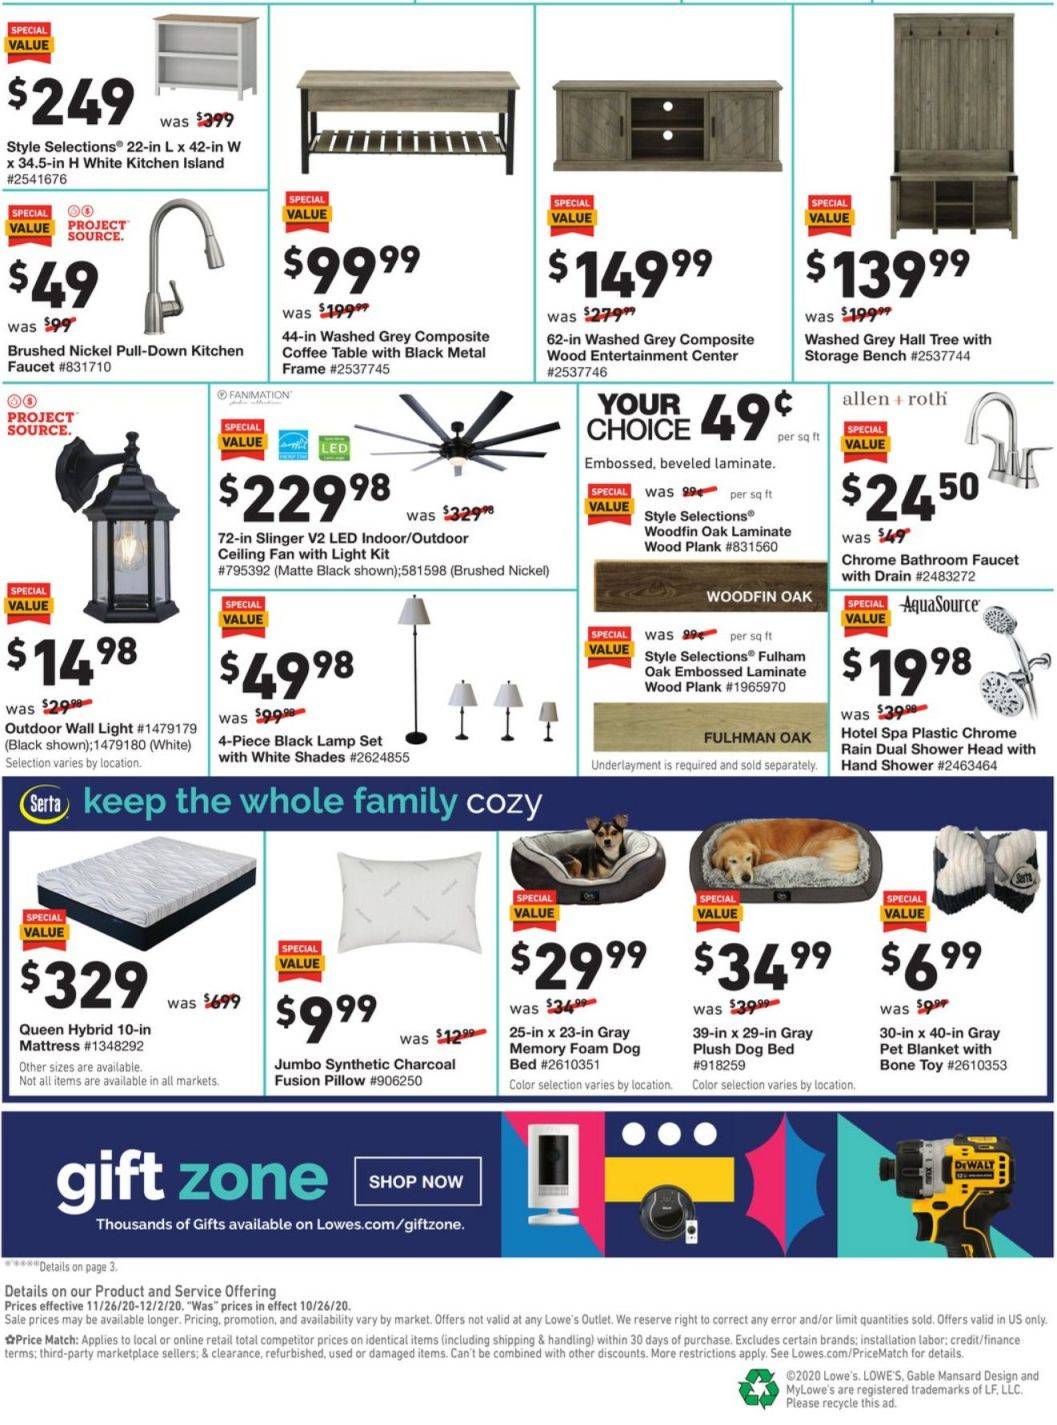 Lowe's Cyber Monday 2020 Page 4